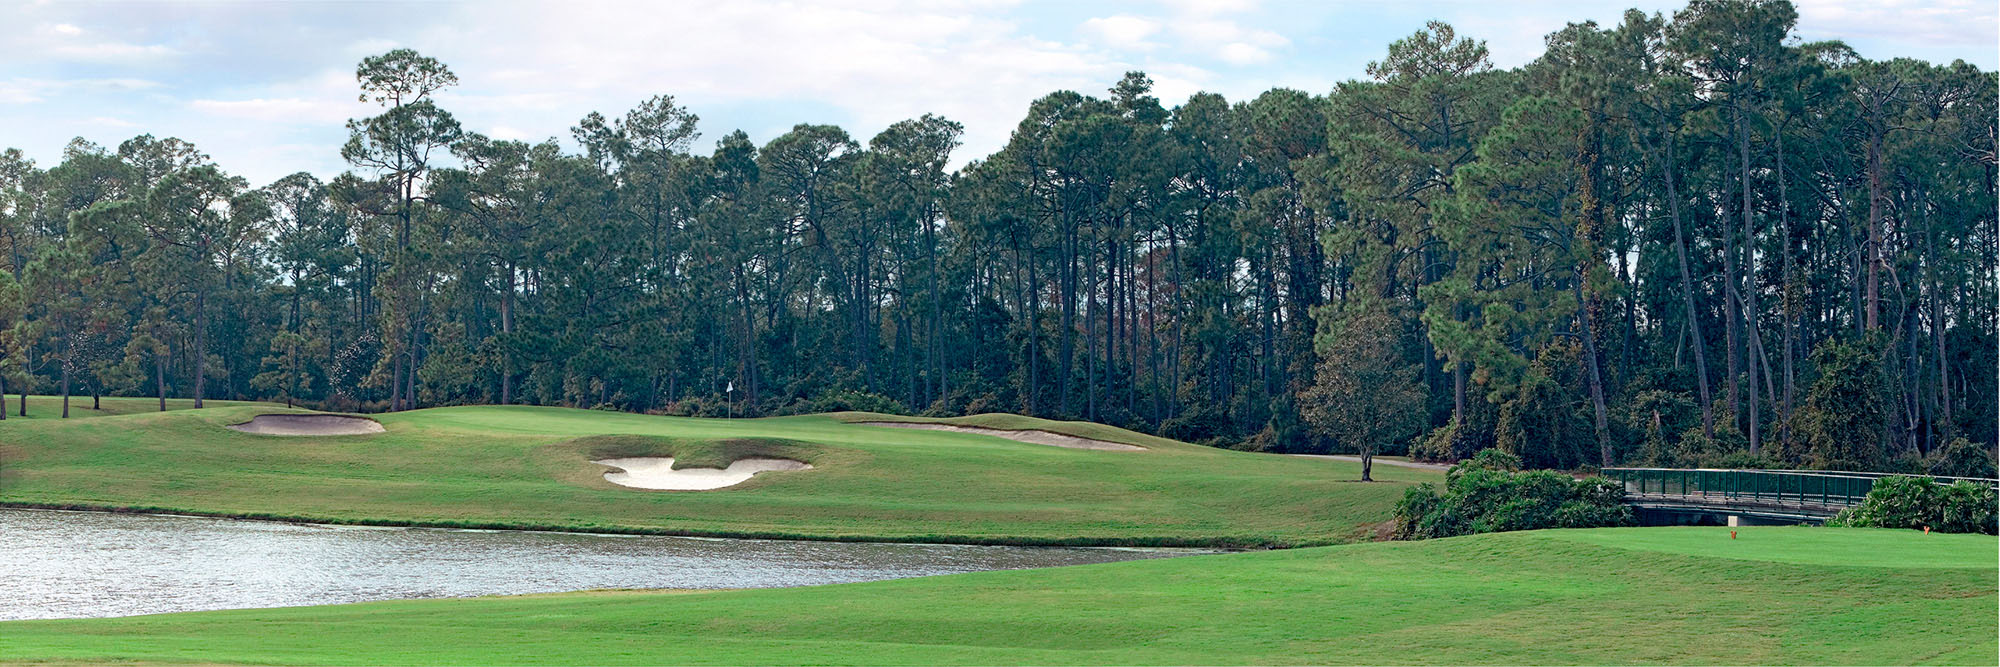 Disney's Magnolia Course